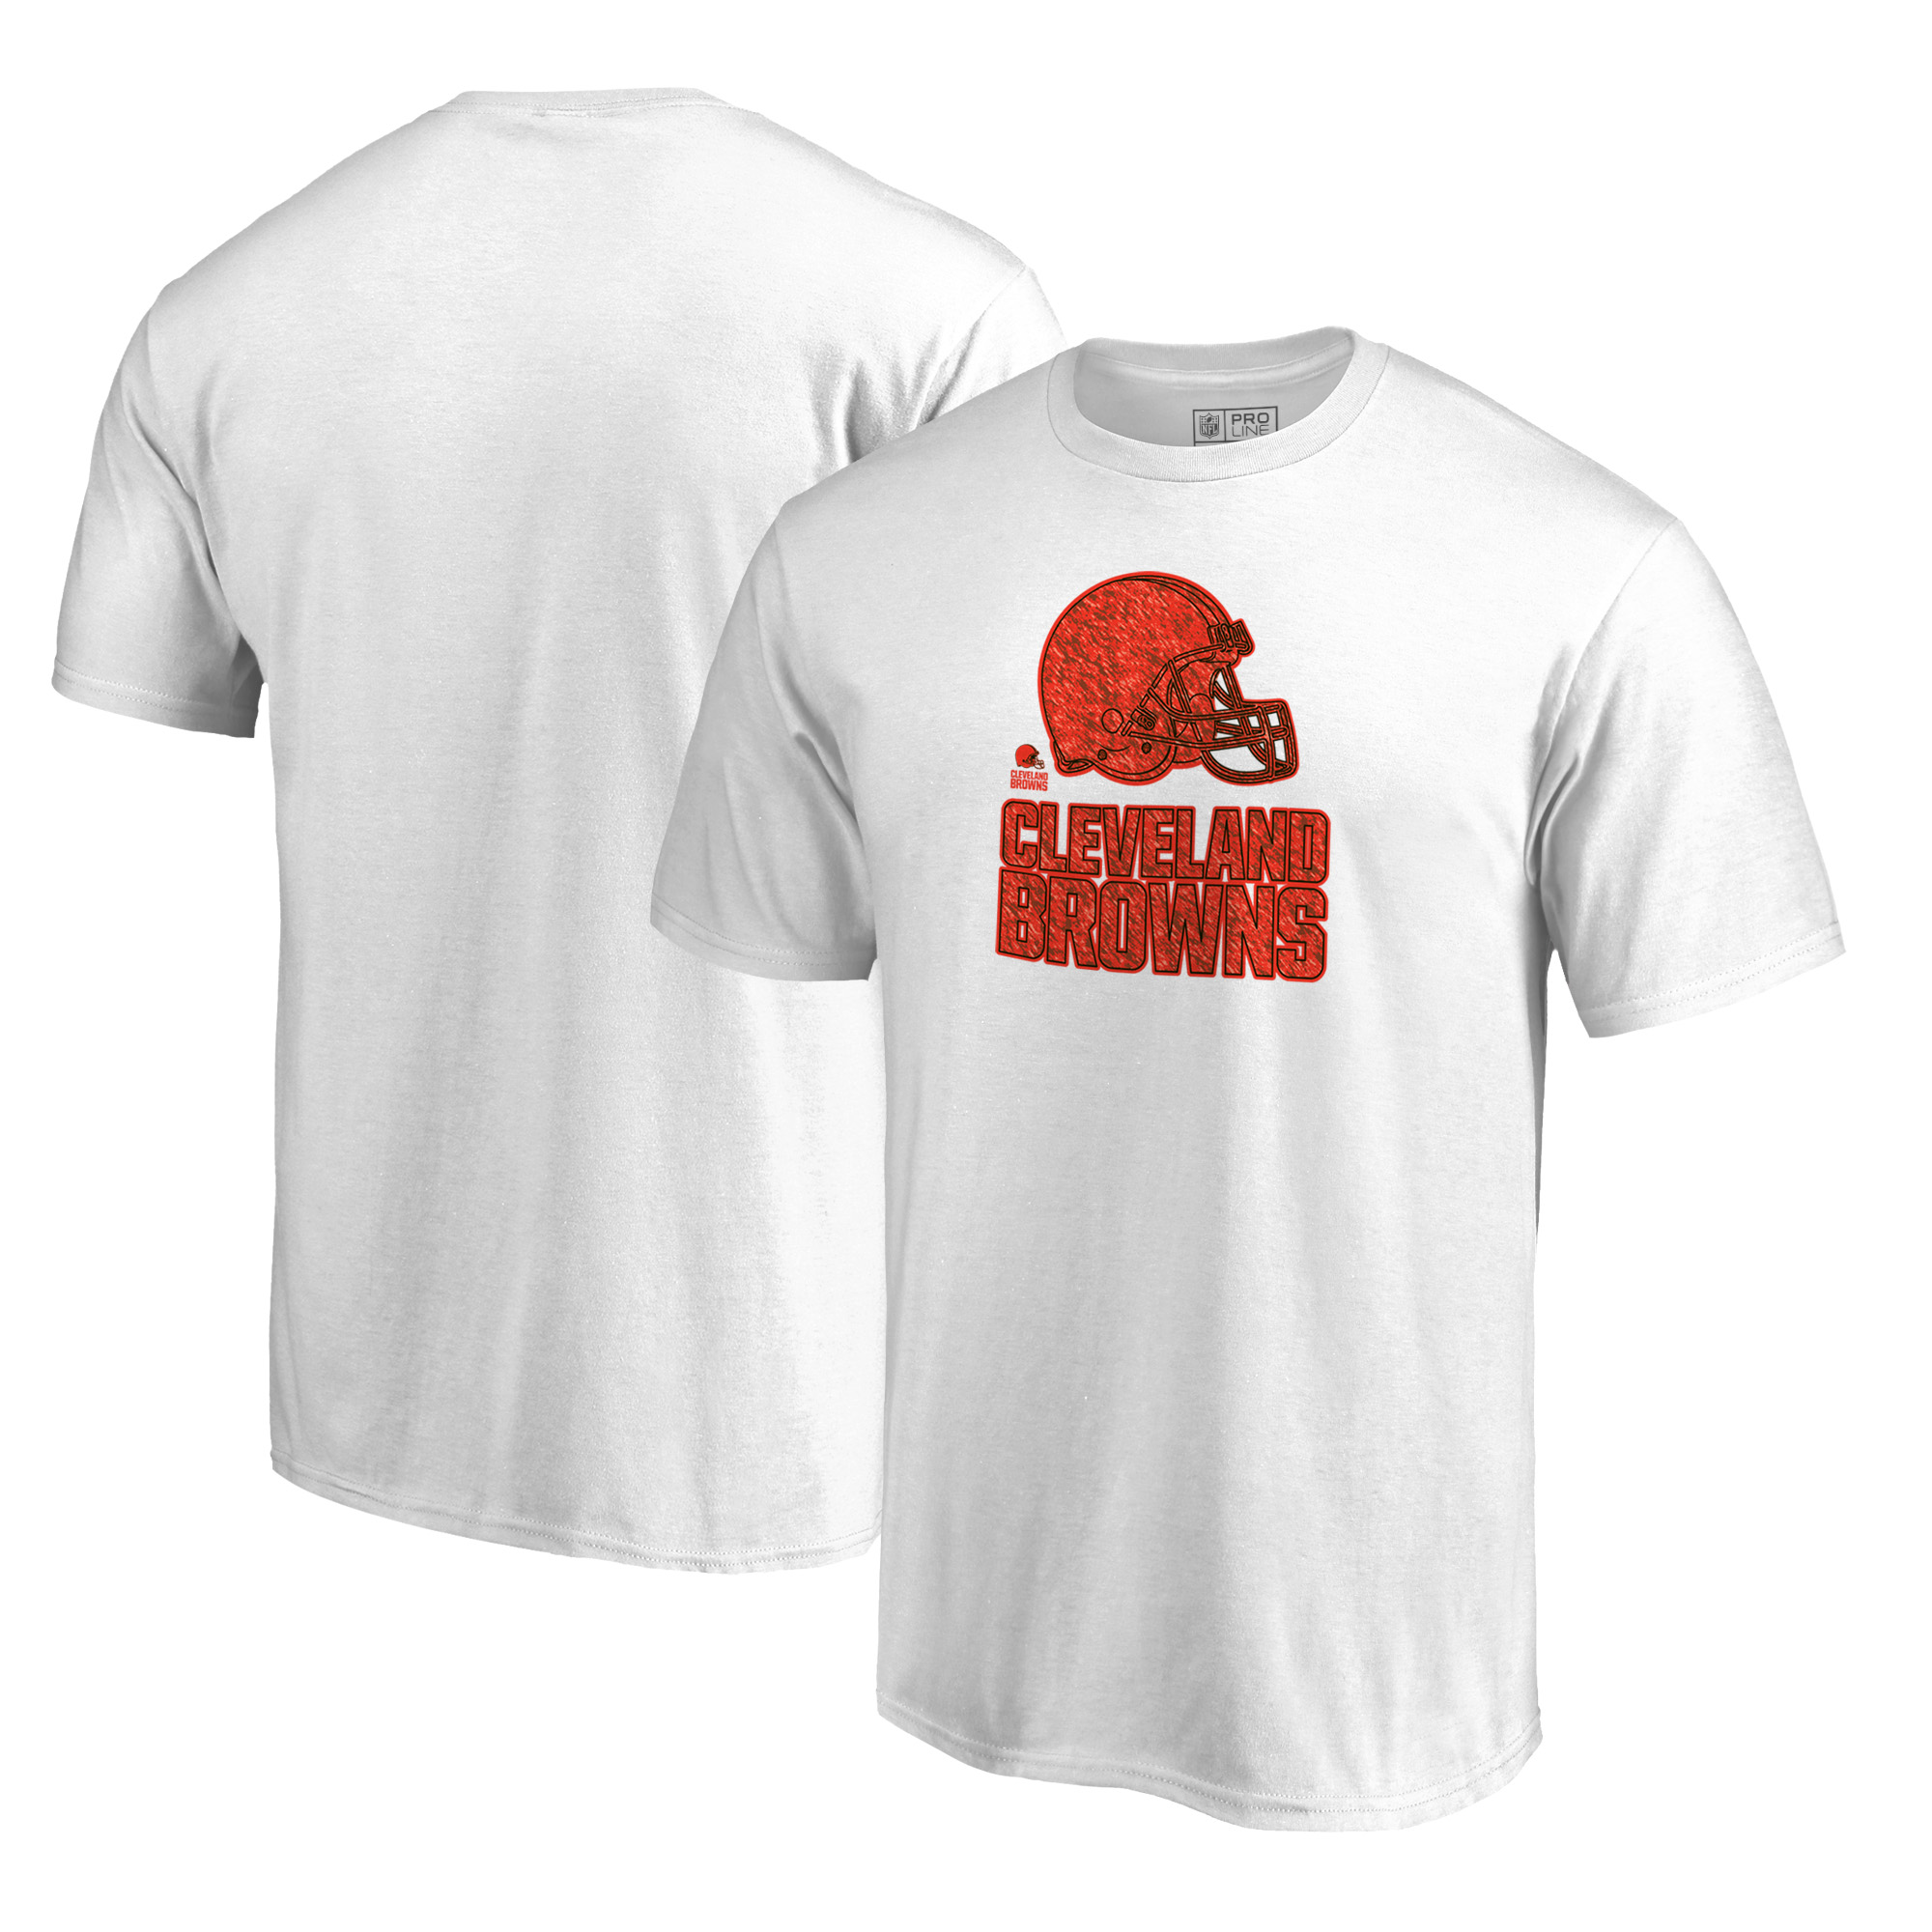 Cleveland Browns NFL Pro Line by Fanatics Branded Training Camp Hookup T-Shirt - White